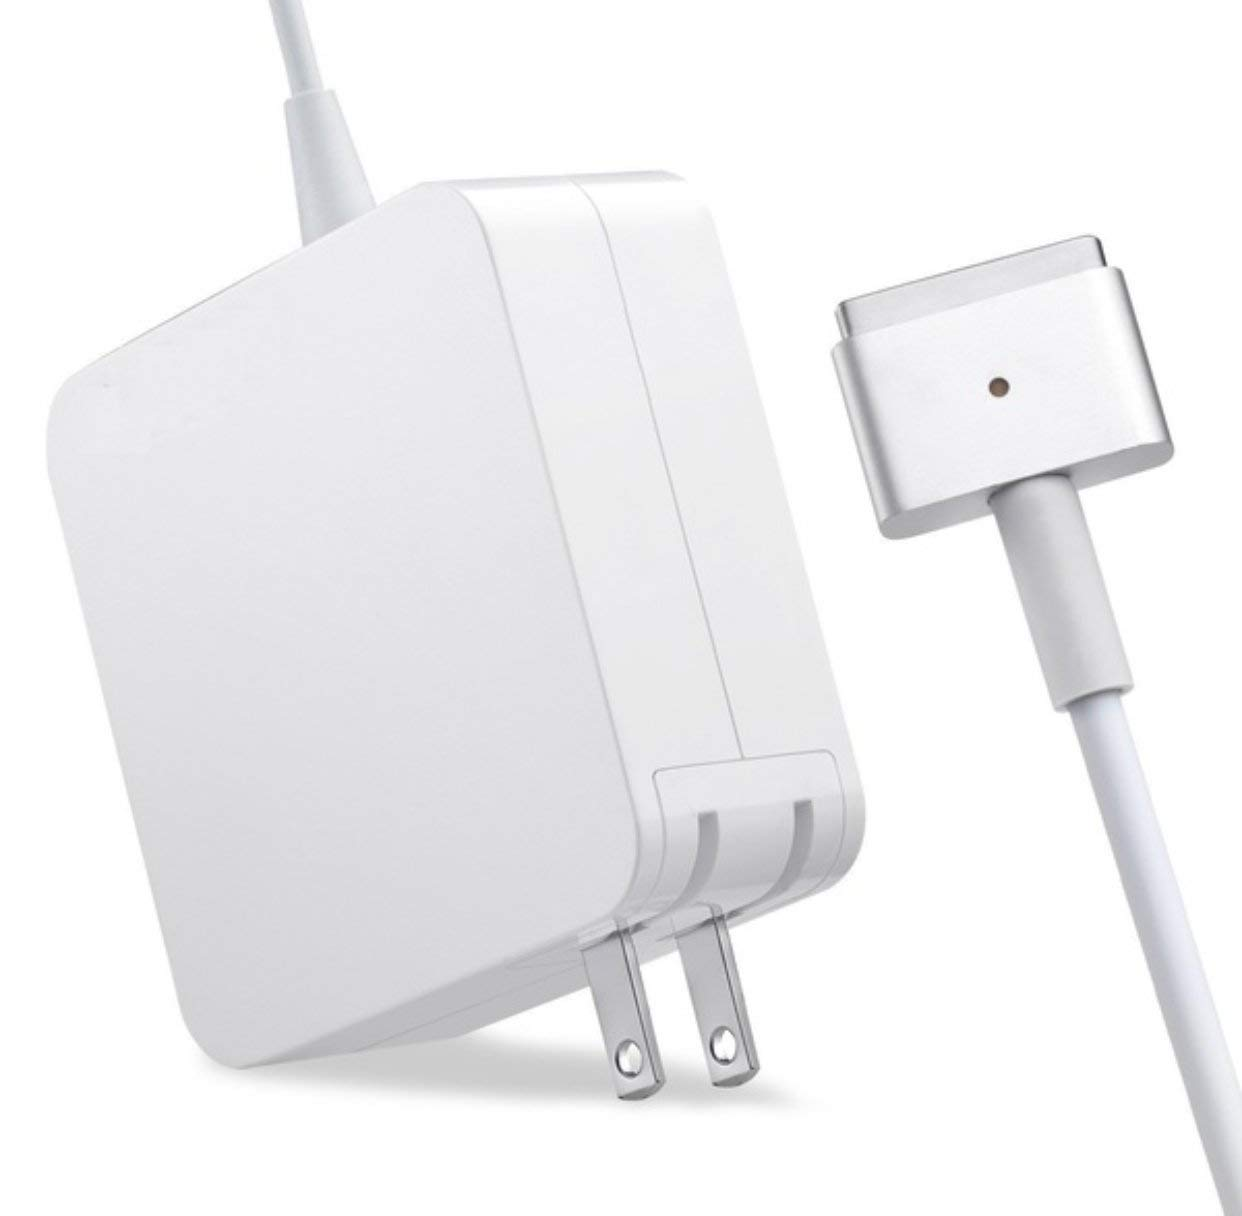 MK-P-T45M2: MacBook Air Charger T-Tip, 45w Magsafe2 Replacement Power Adapter With Plug Converter of Extension Cord for MacBook Air 11-inch & 13 inch